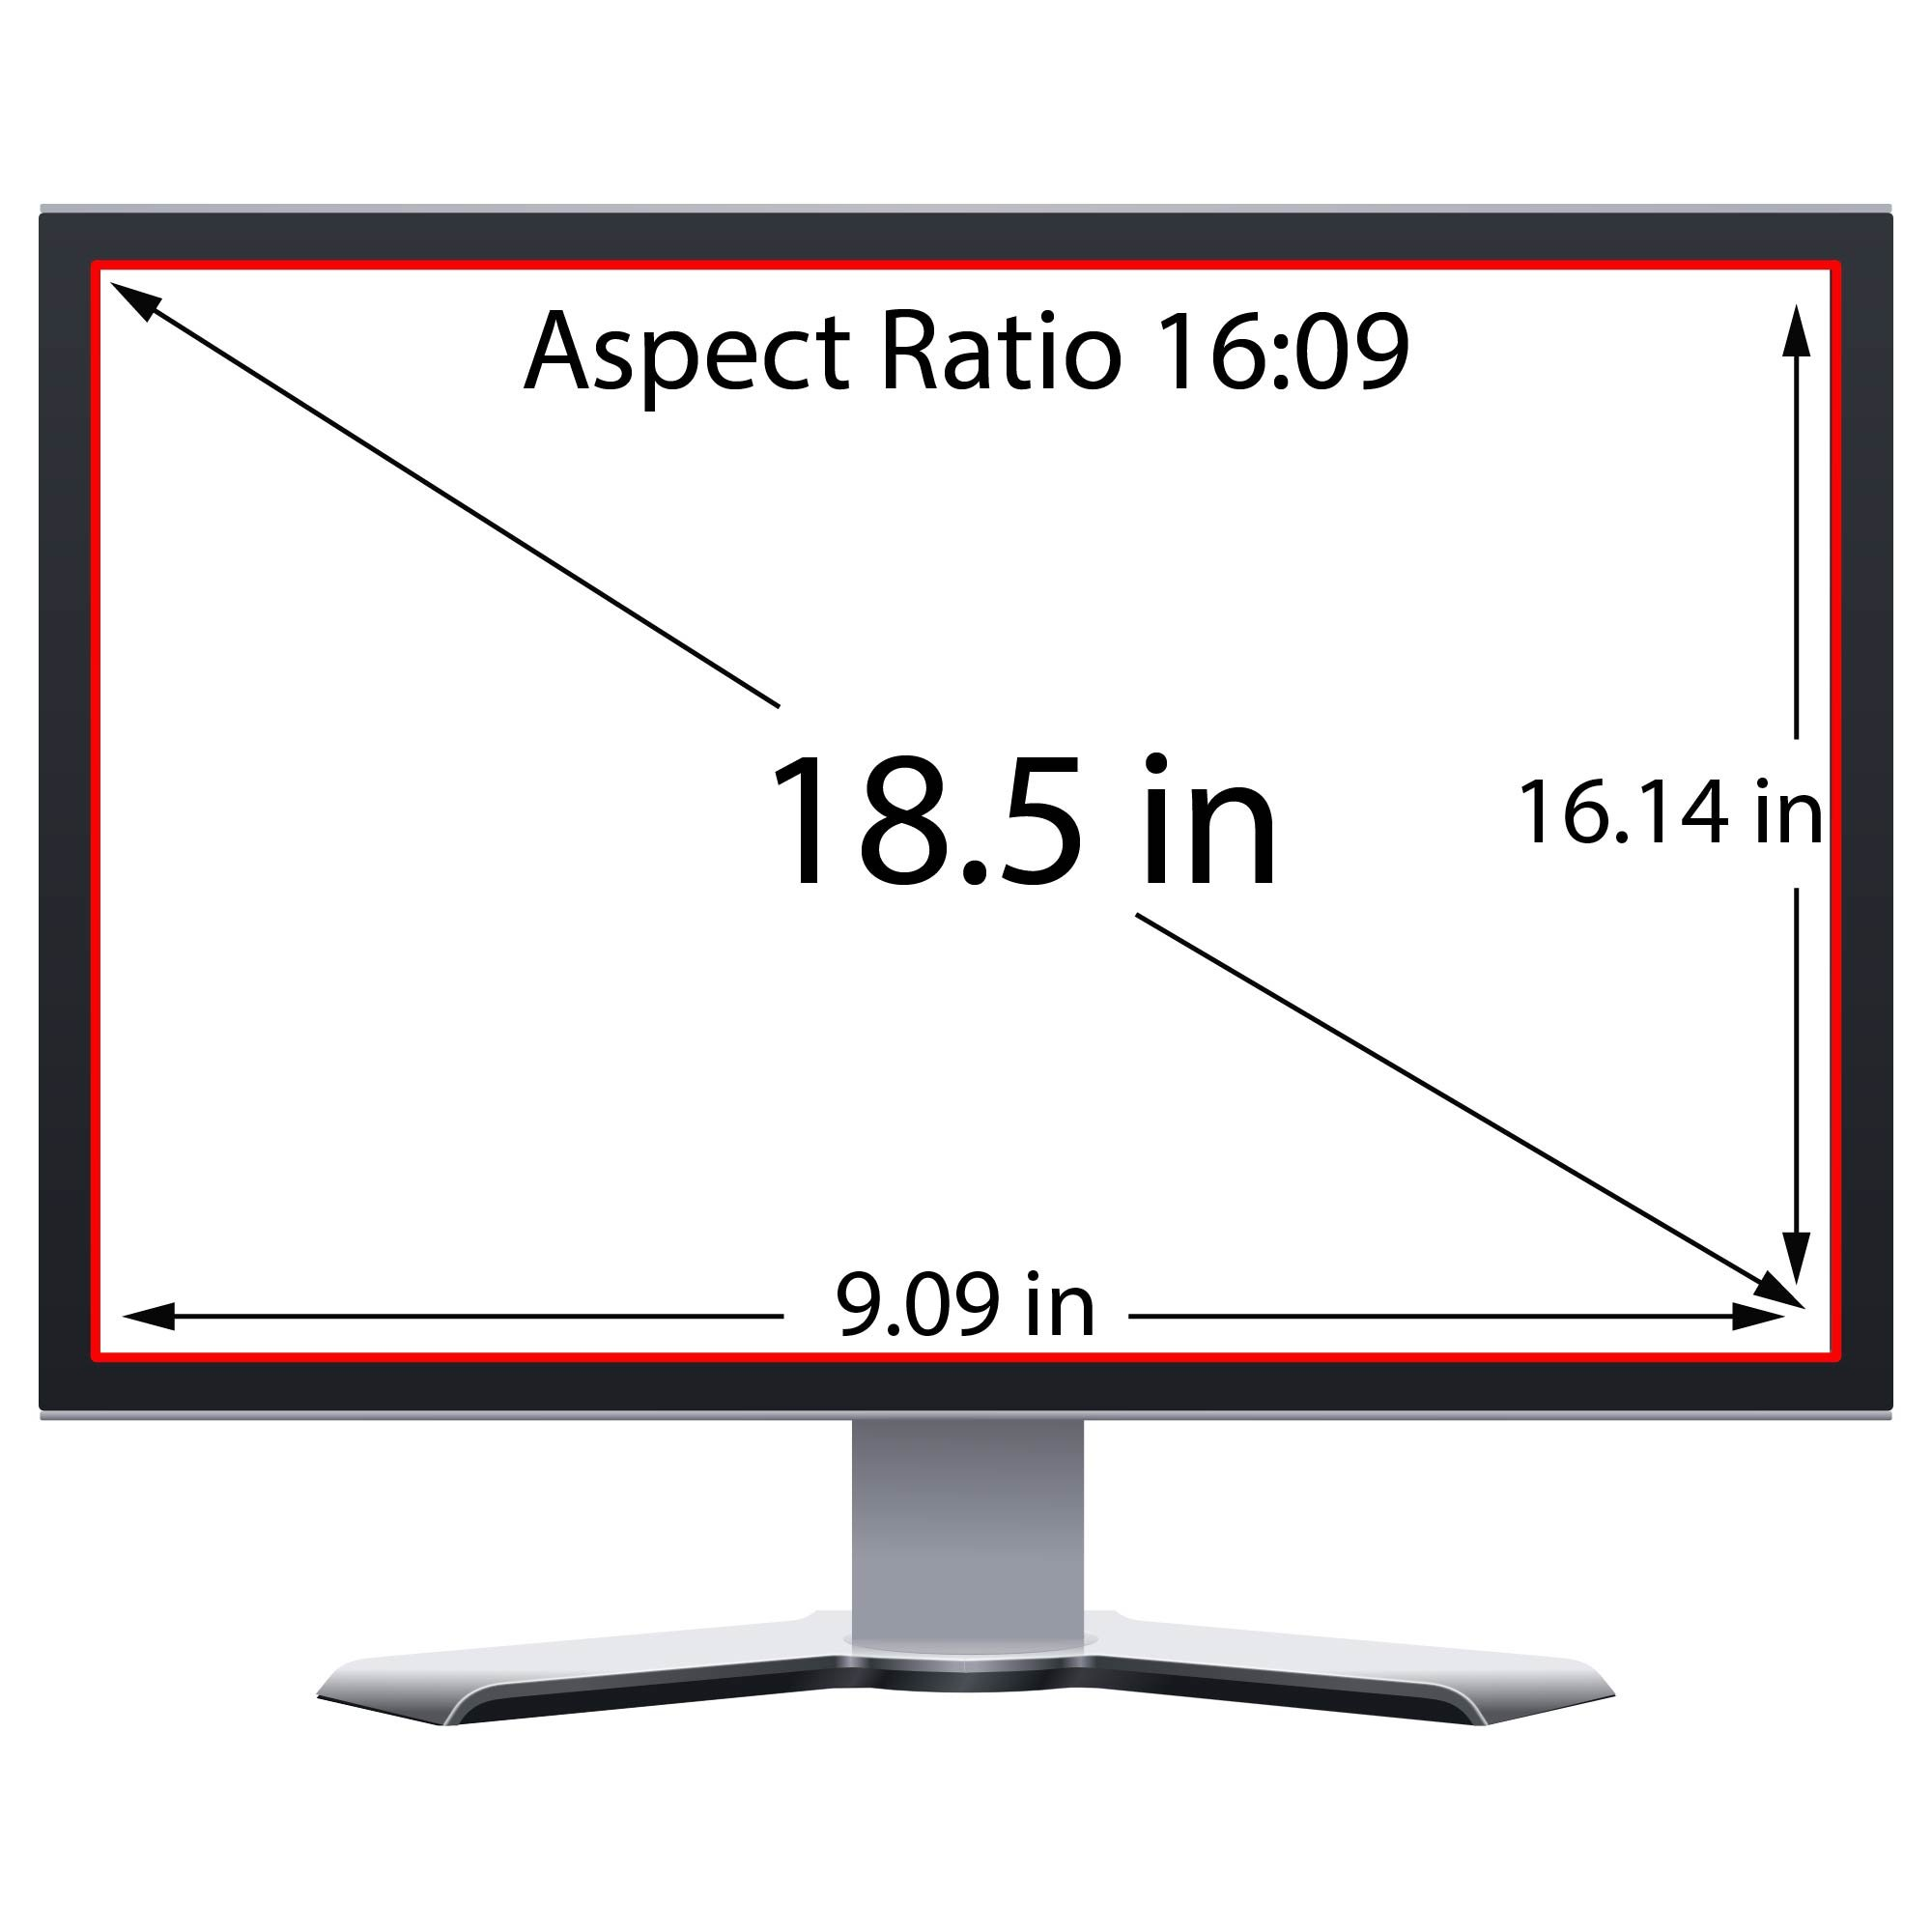 Privacy Screen Filter and Anti Glare for 18.5 Inches Computer Monitor with Aspect Ratio 16:09 Please check Dimension Carefully